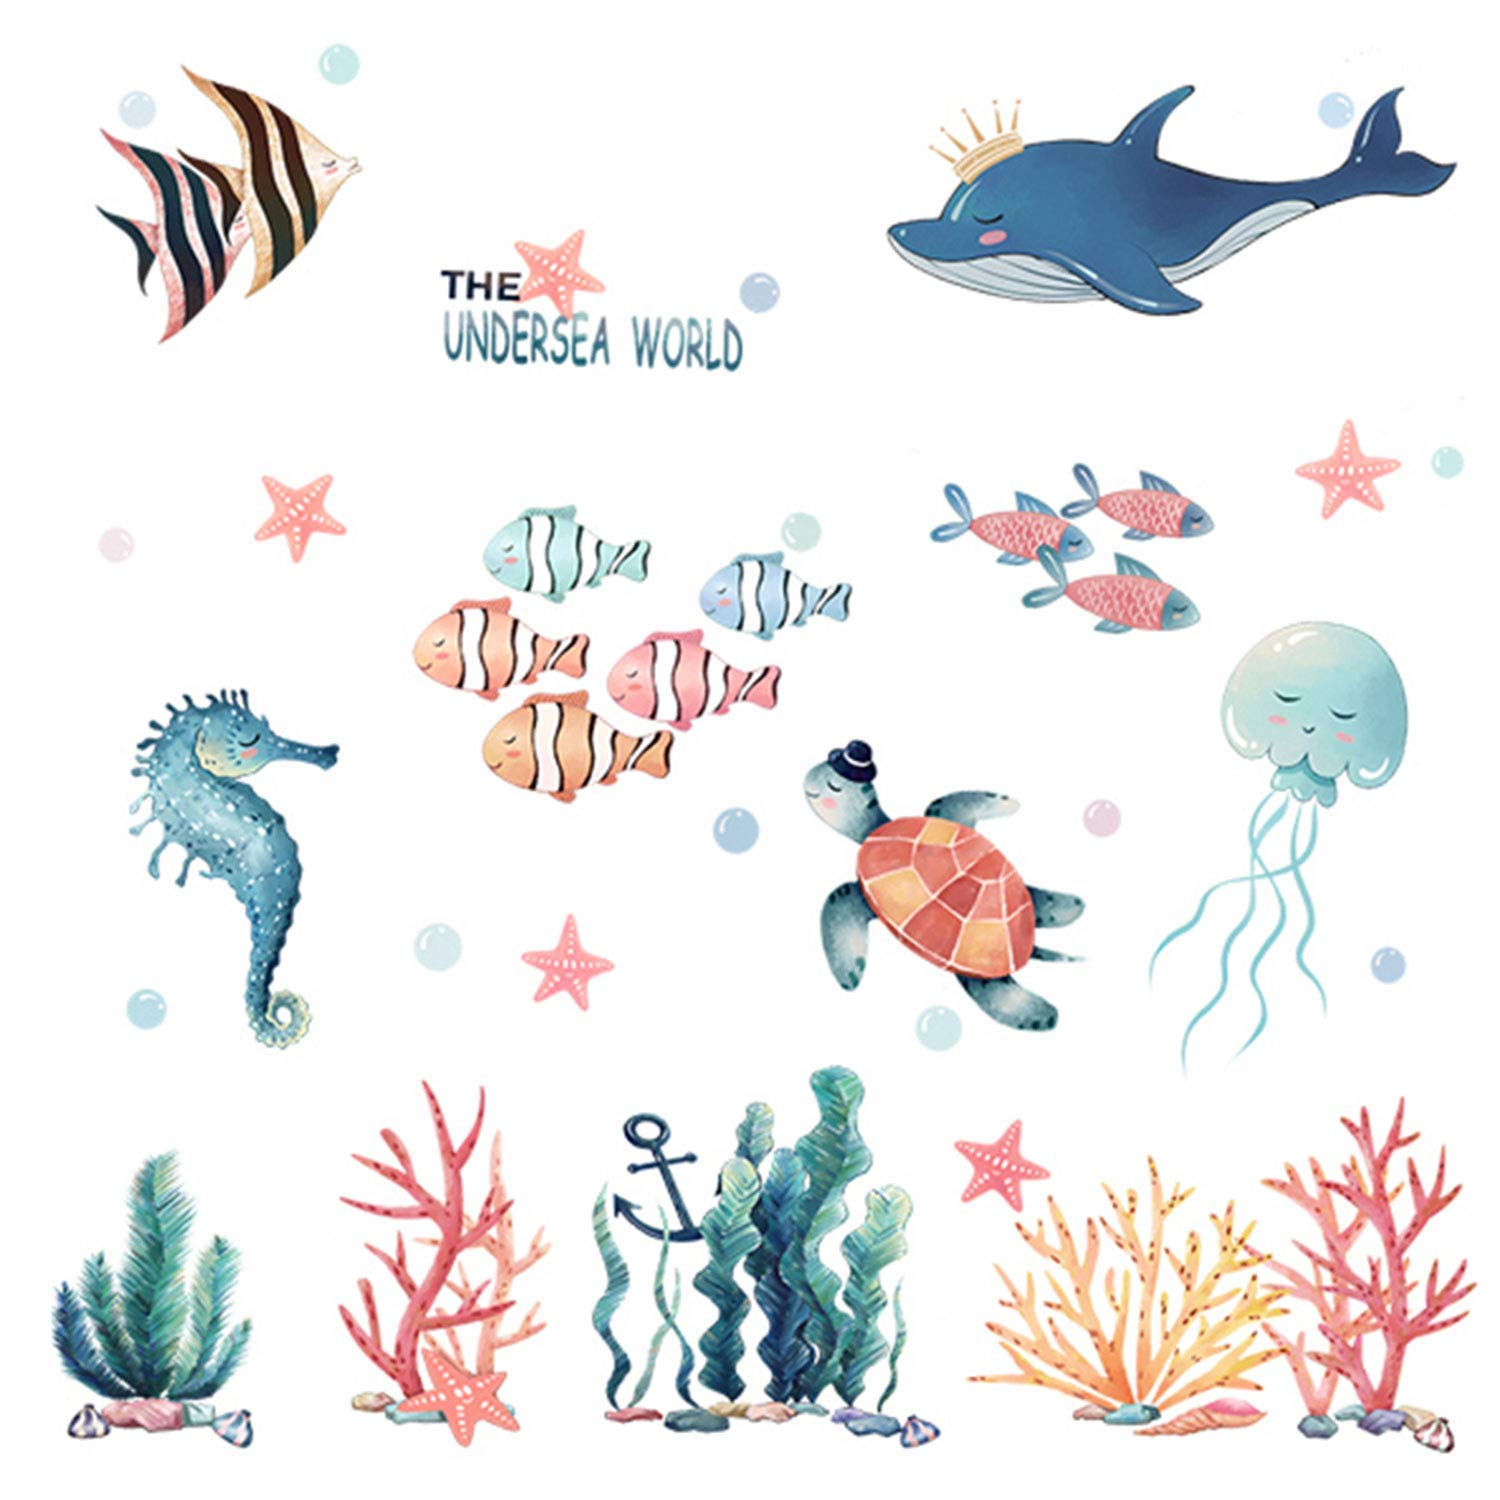 RW-1012 3D Under The Sea View Wall Sticker Ocean Animals Coral Wall Stickers Removable Peel and Stick Home Wall Art Decor for Girls Boys Kids Babys Bedroom Offices Living Room Bathroom (Fish)